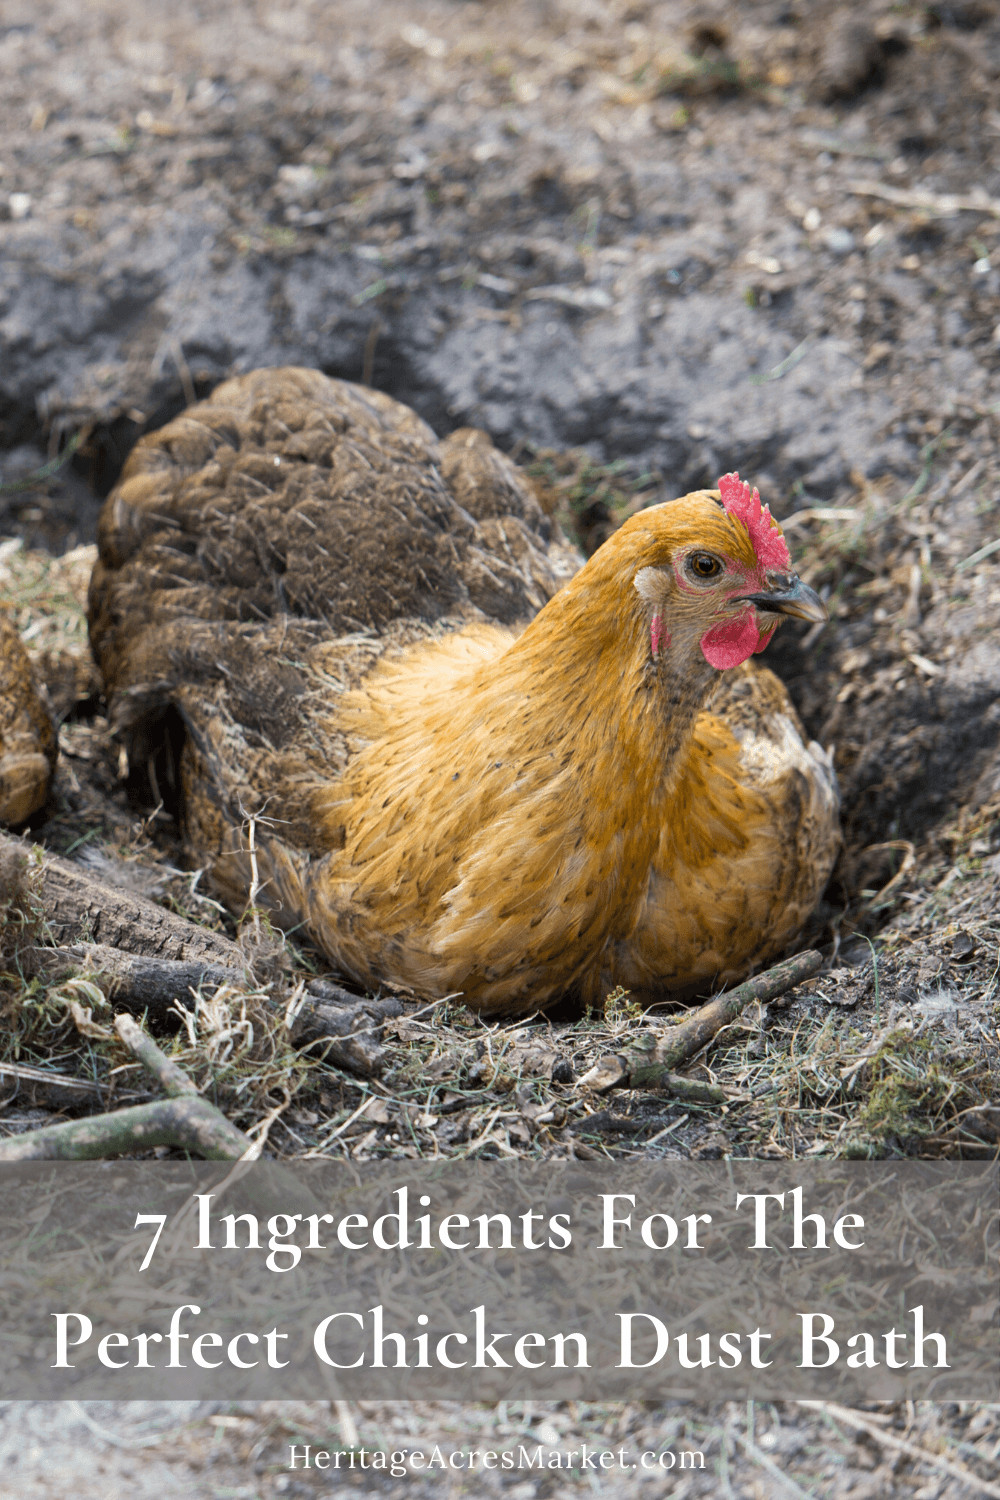 7 Ingredients For The Perfect Chicken Dust Bath